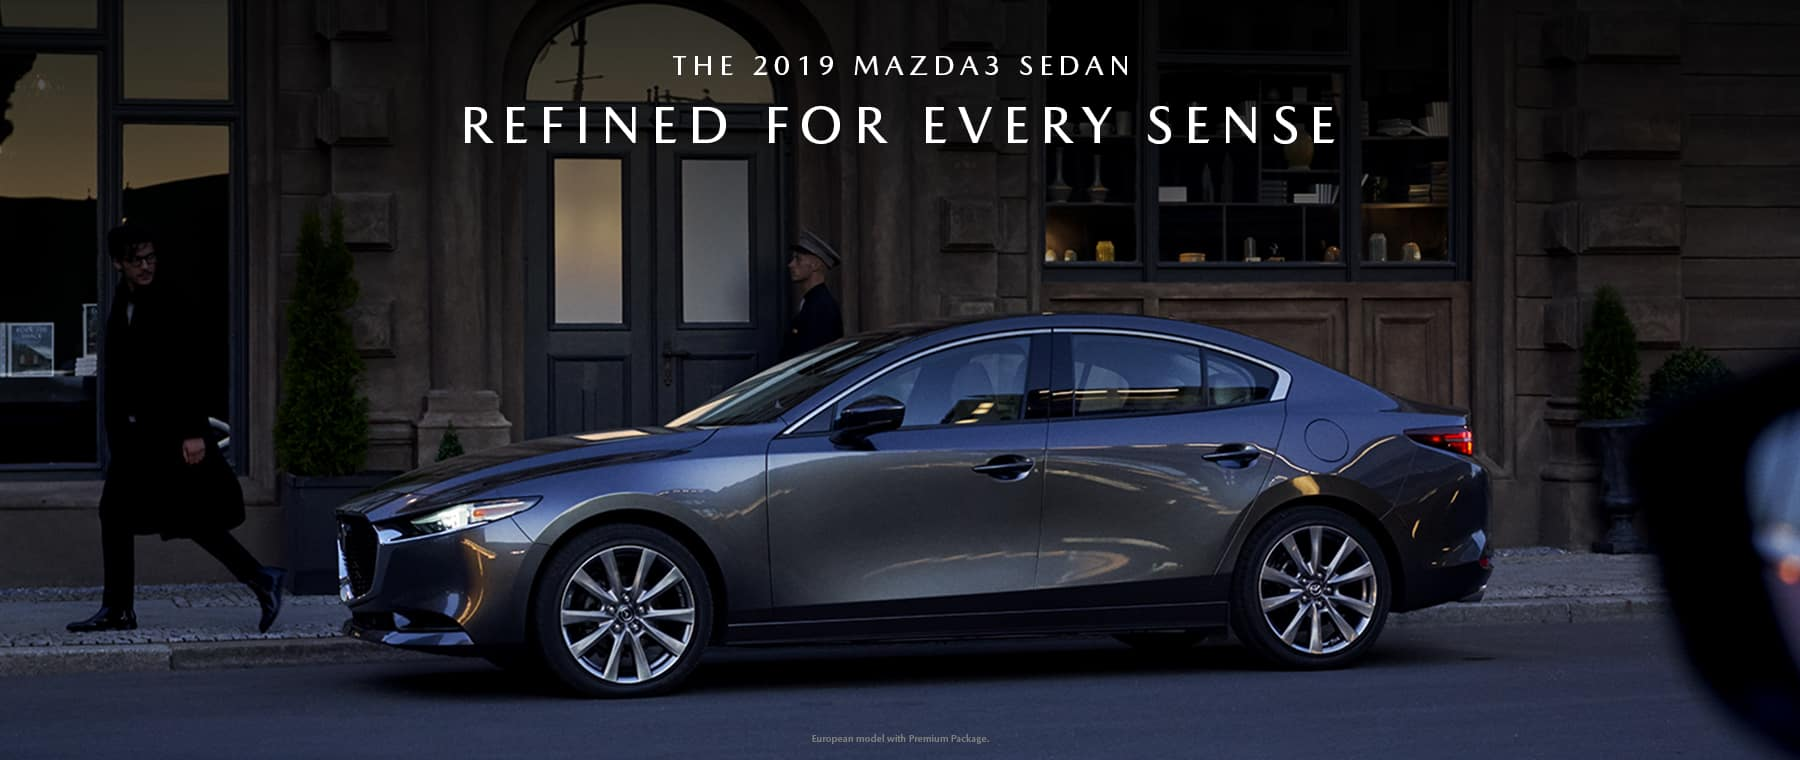 Quality Mazda | Mazda Dealer in Albuquerque, NM